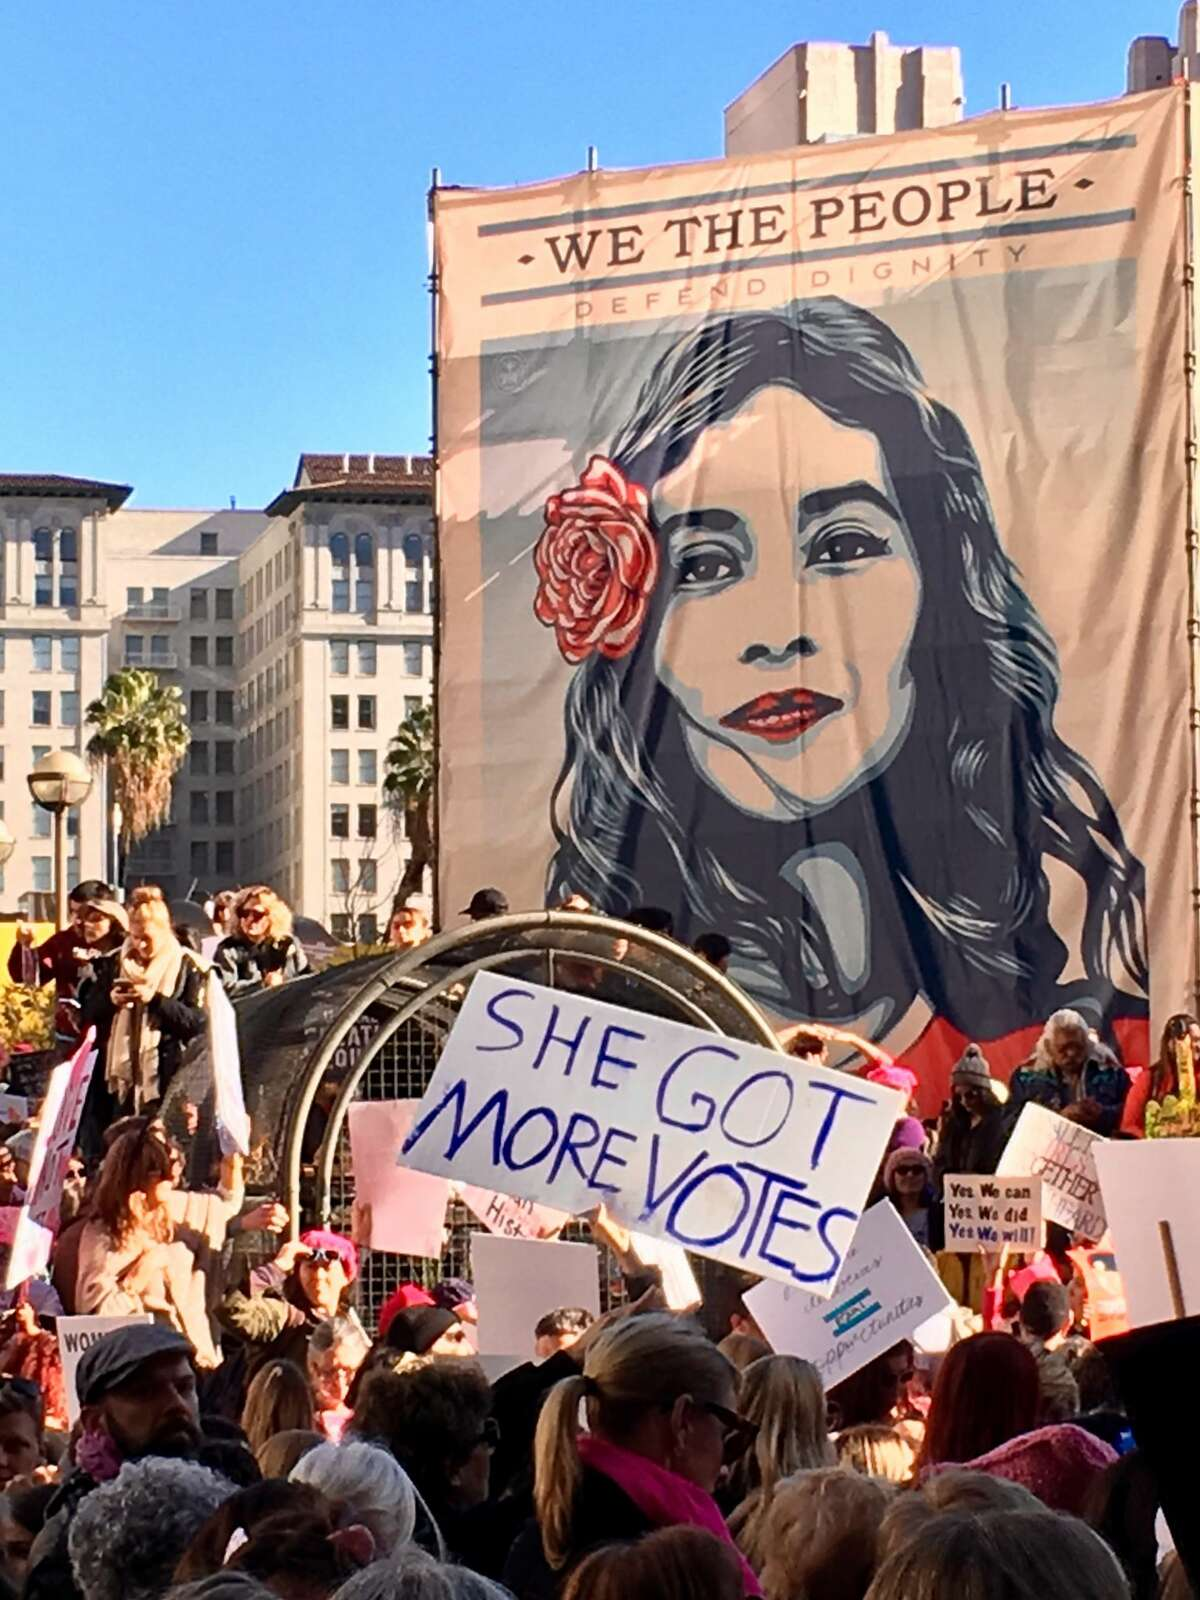 A sign at the Women's March in Los Angeles, Jan. 21, 2017. Scroll through the gallery to see more photos from the Women's March in January. Caution: There may be offensive language in the photos.